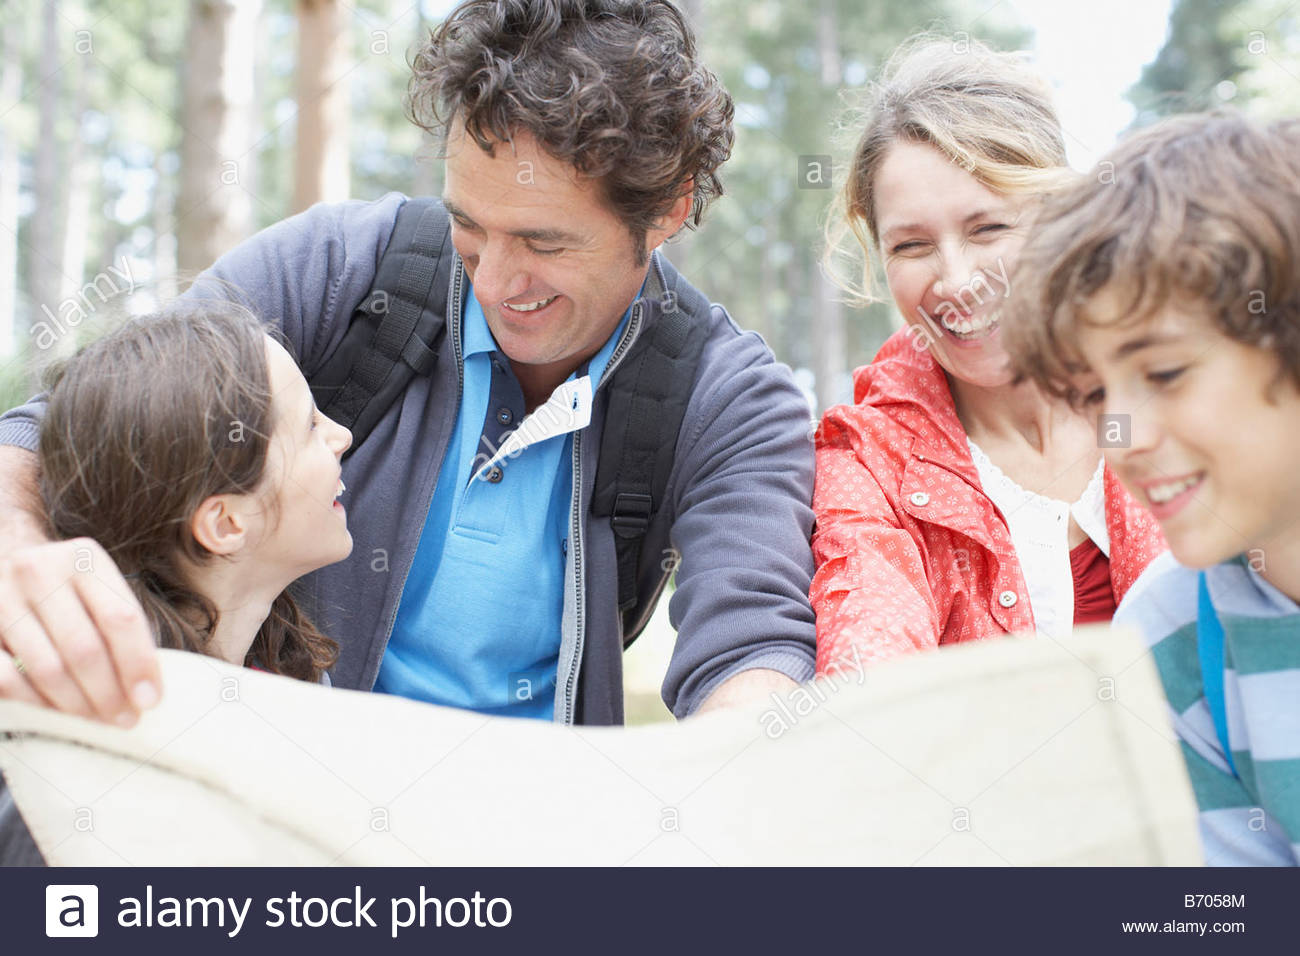 Family looking at map - Stock Image